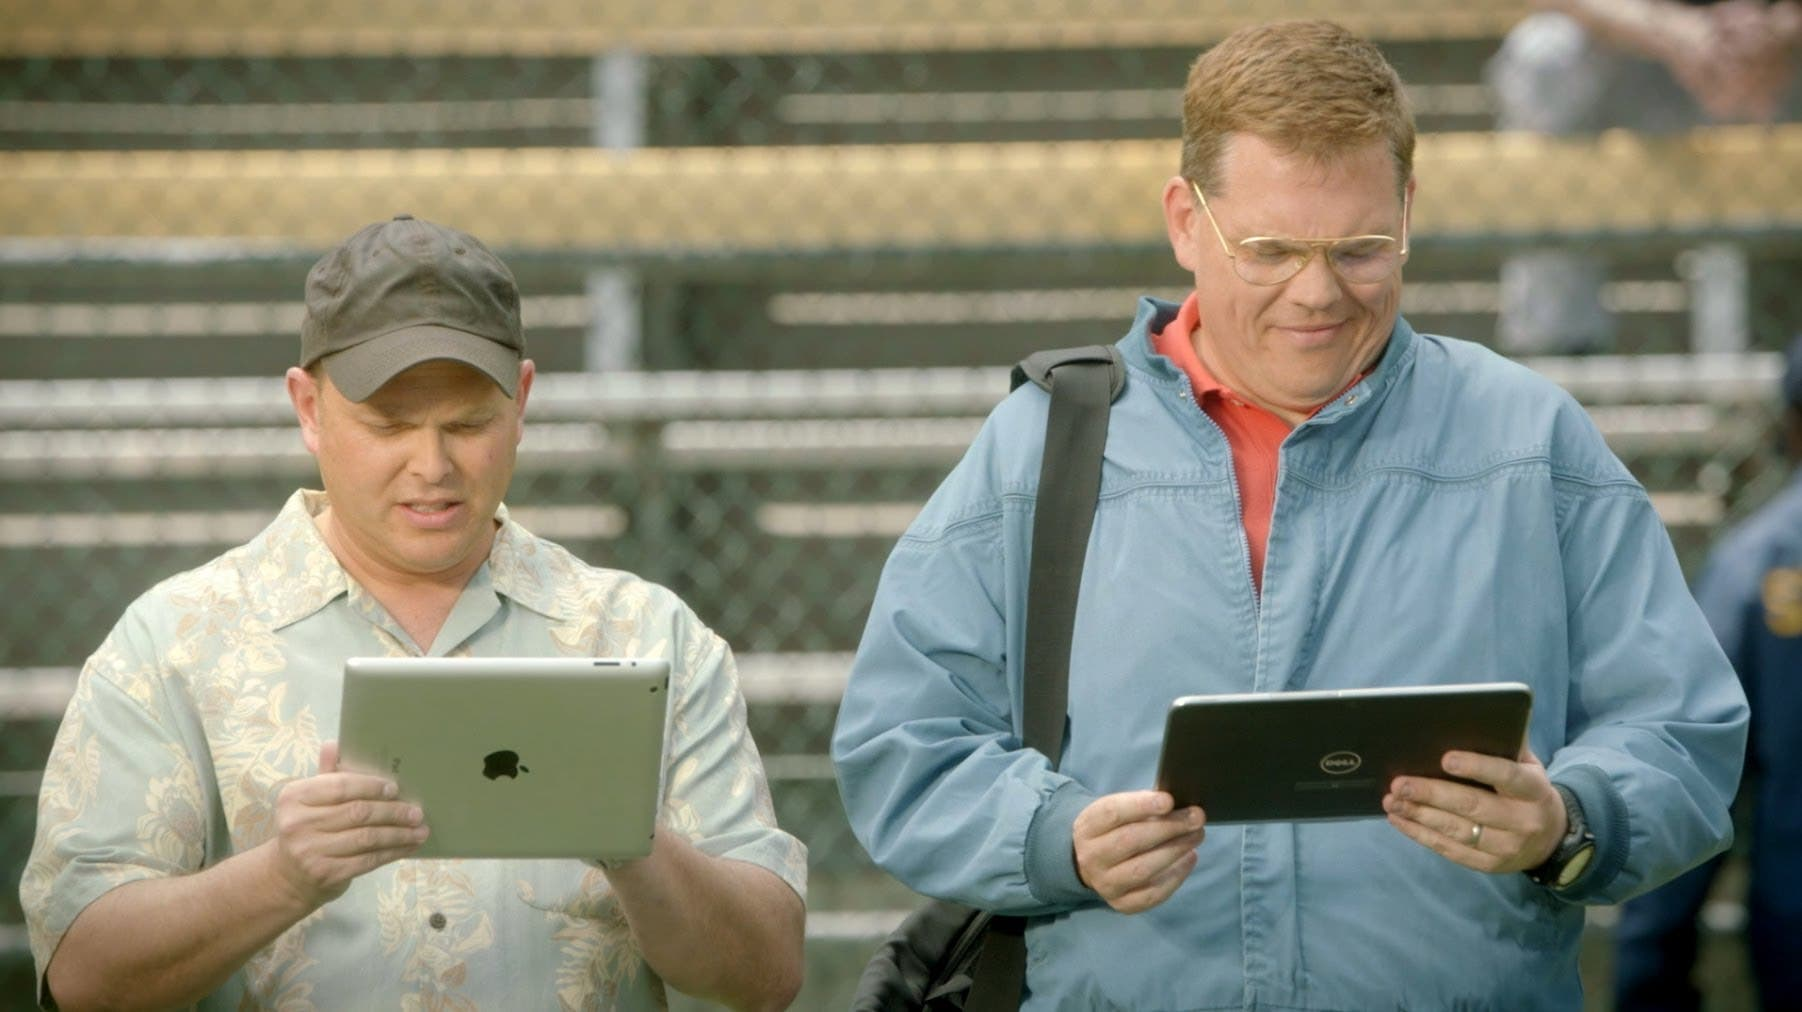 Windows 8 Tablet vs iPad